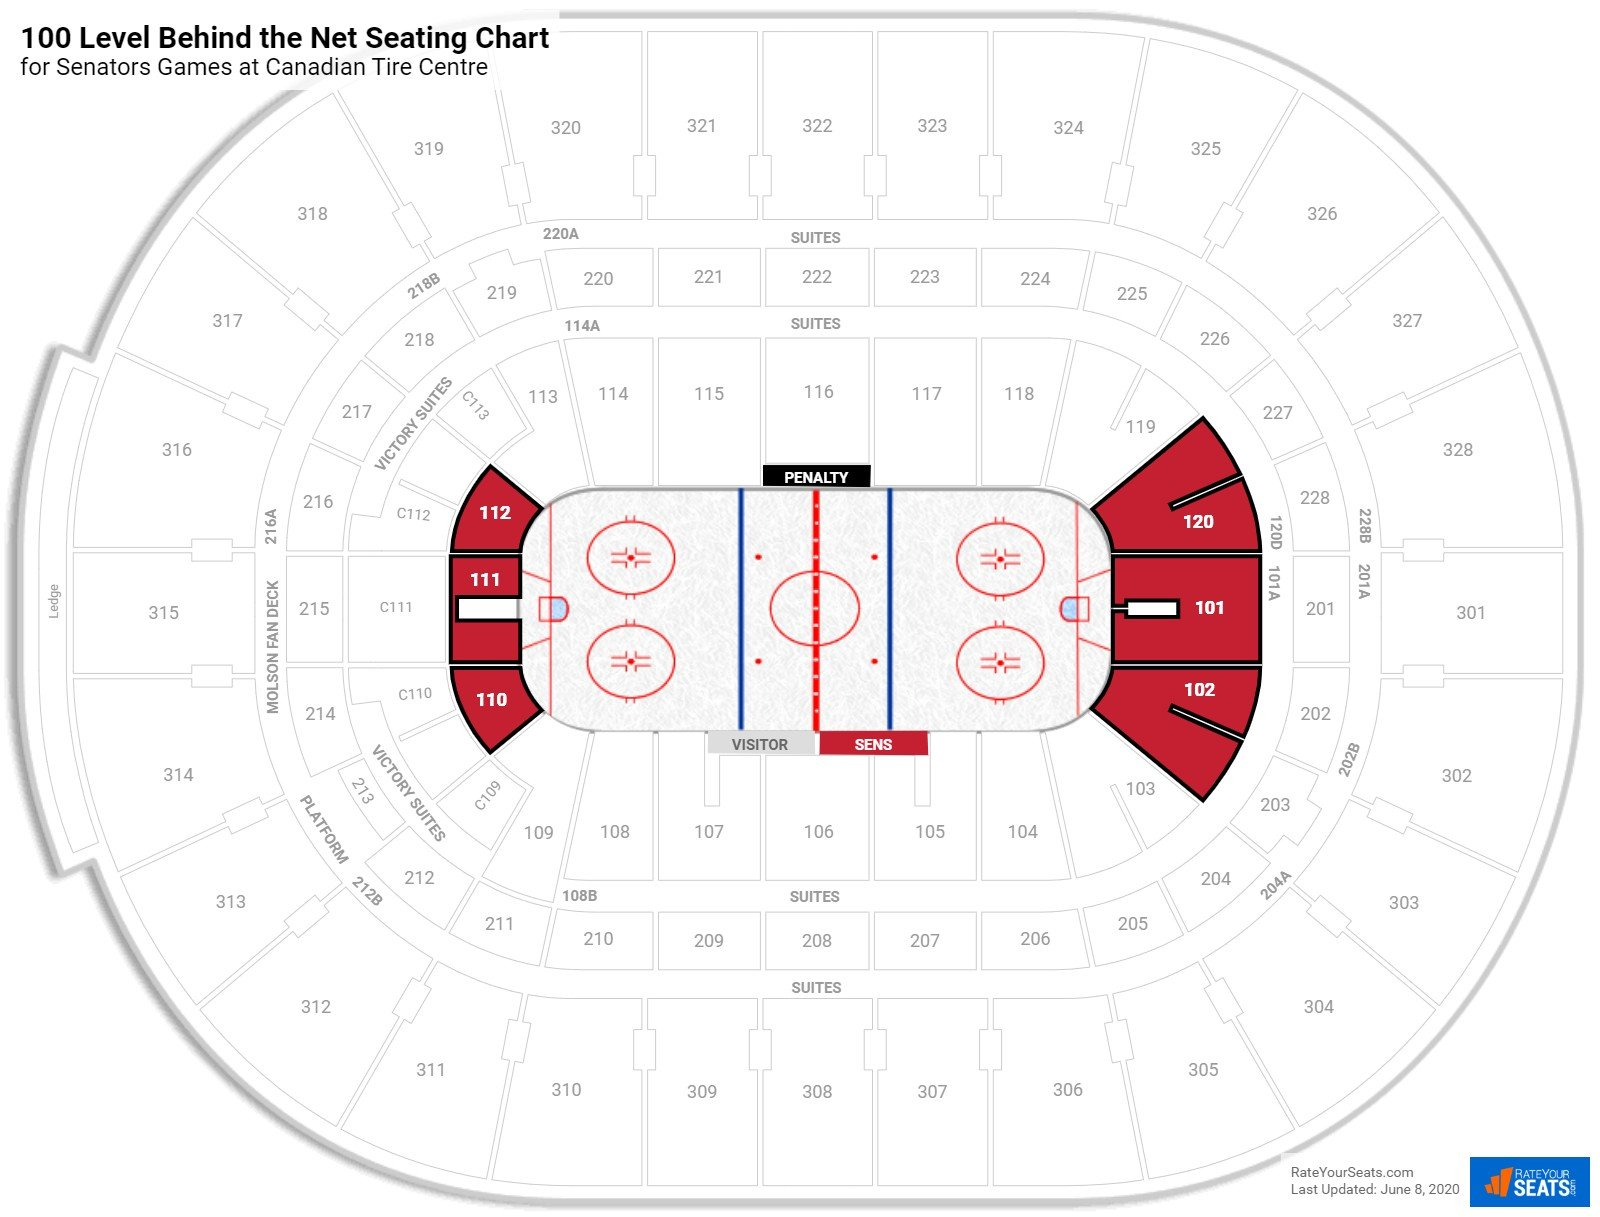 Canadian Tire Centre 100 Level Behind the Net seating chart